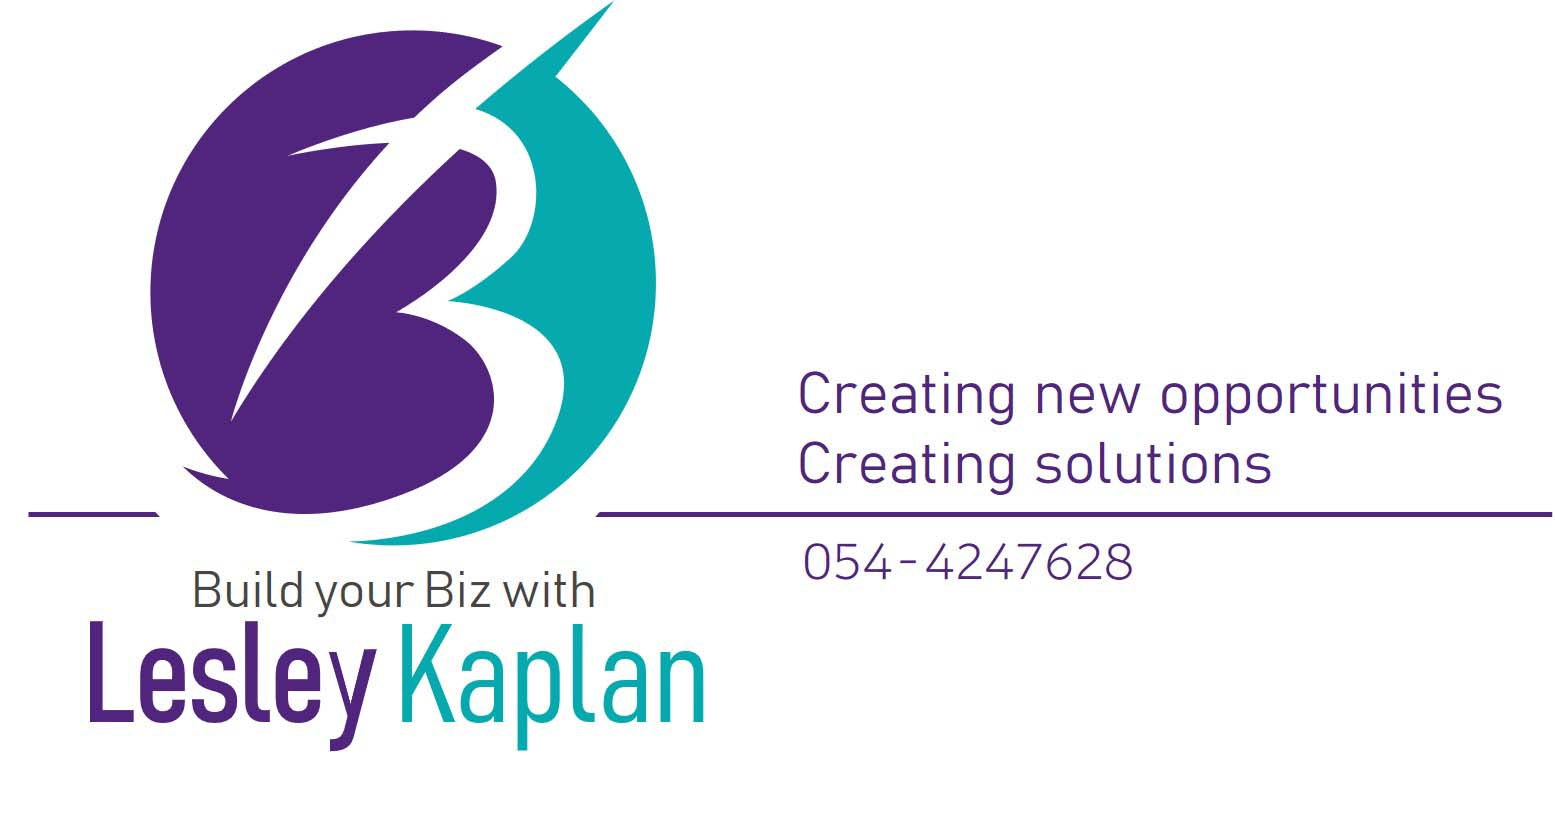 Build your Biz with Lesley Kaplan